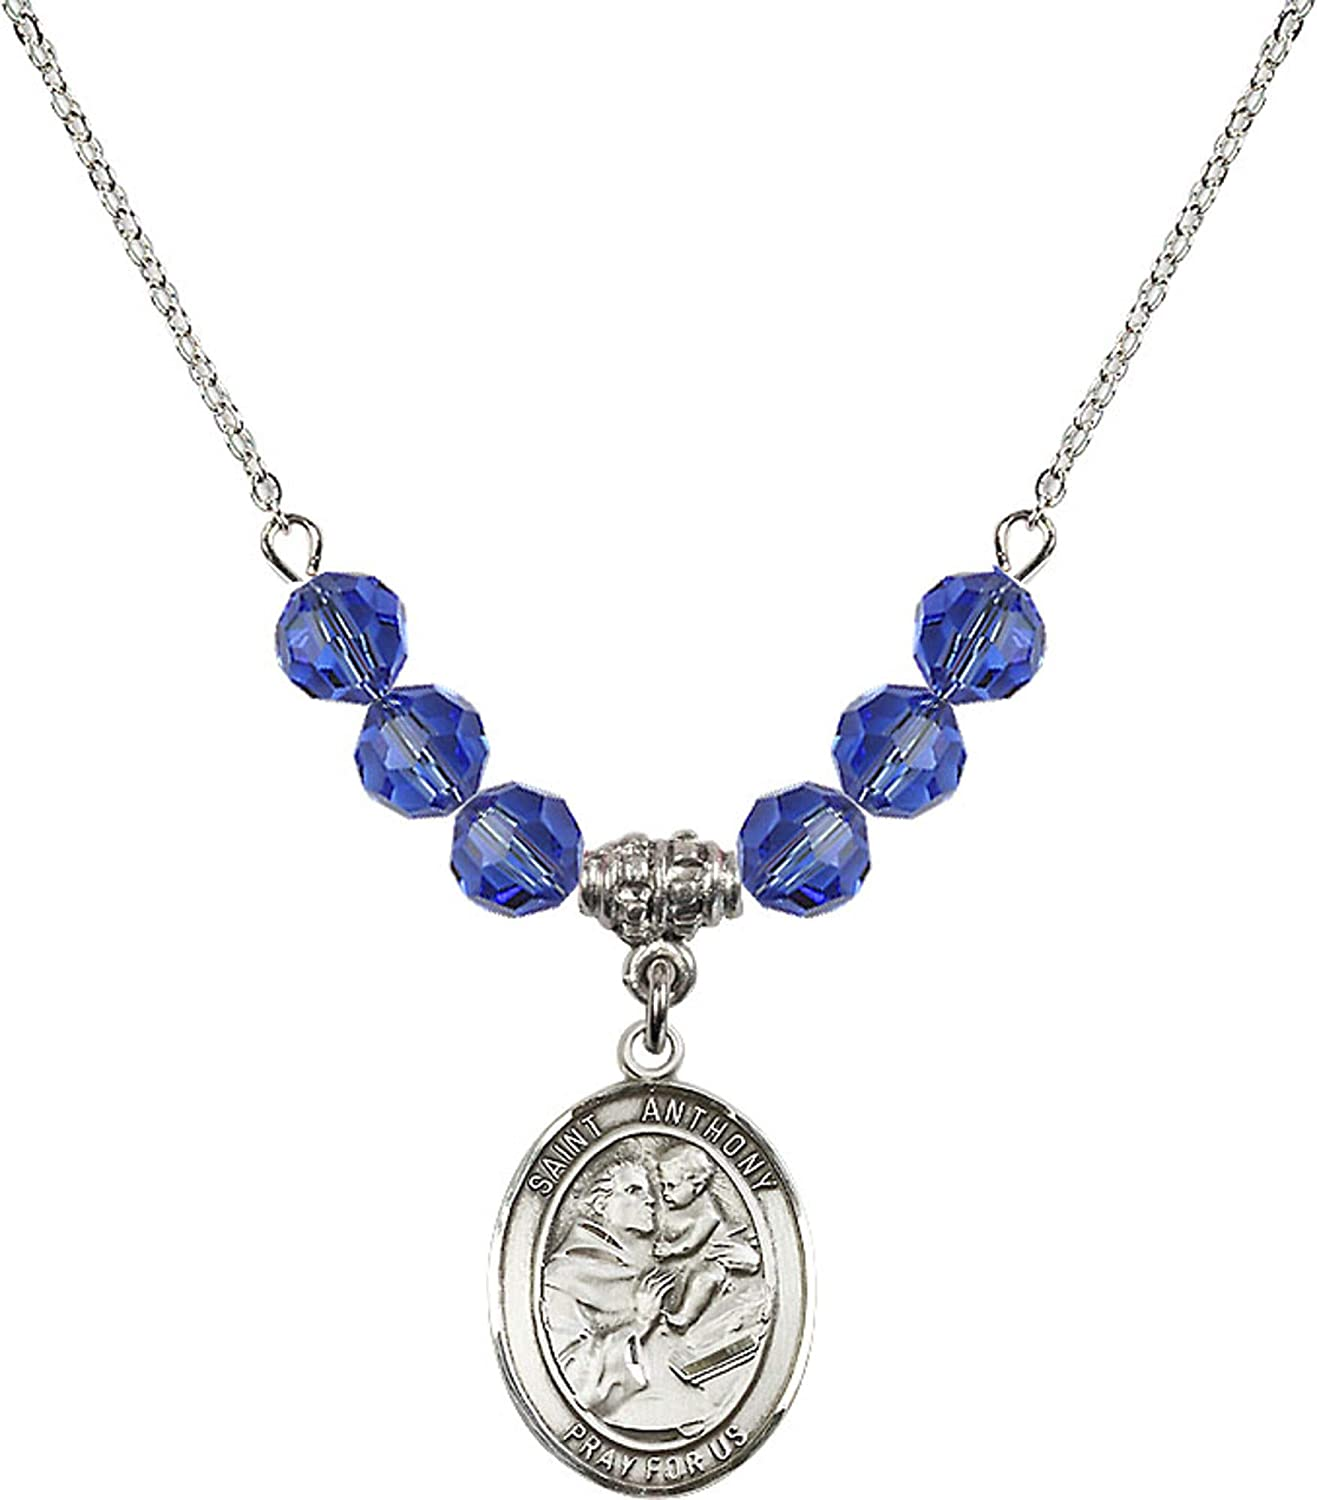 Bonyak Jewelry 18 Inch Rhodium Plated Necklace w// 6mm Blue September Birth Month Stone Beads and Saint Anthony of Padua Charm